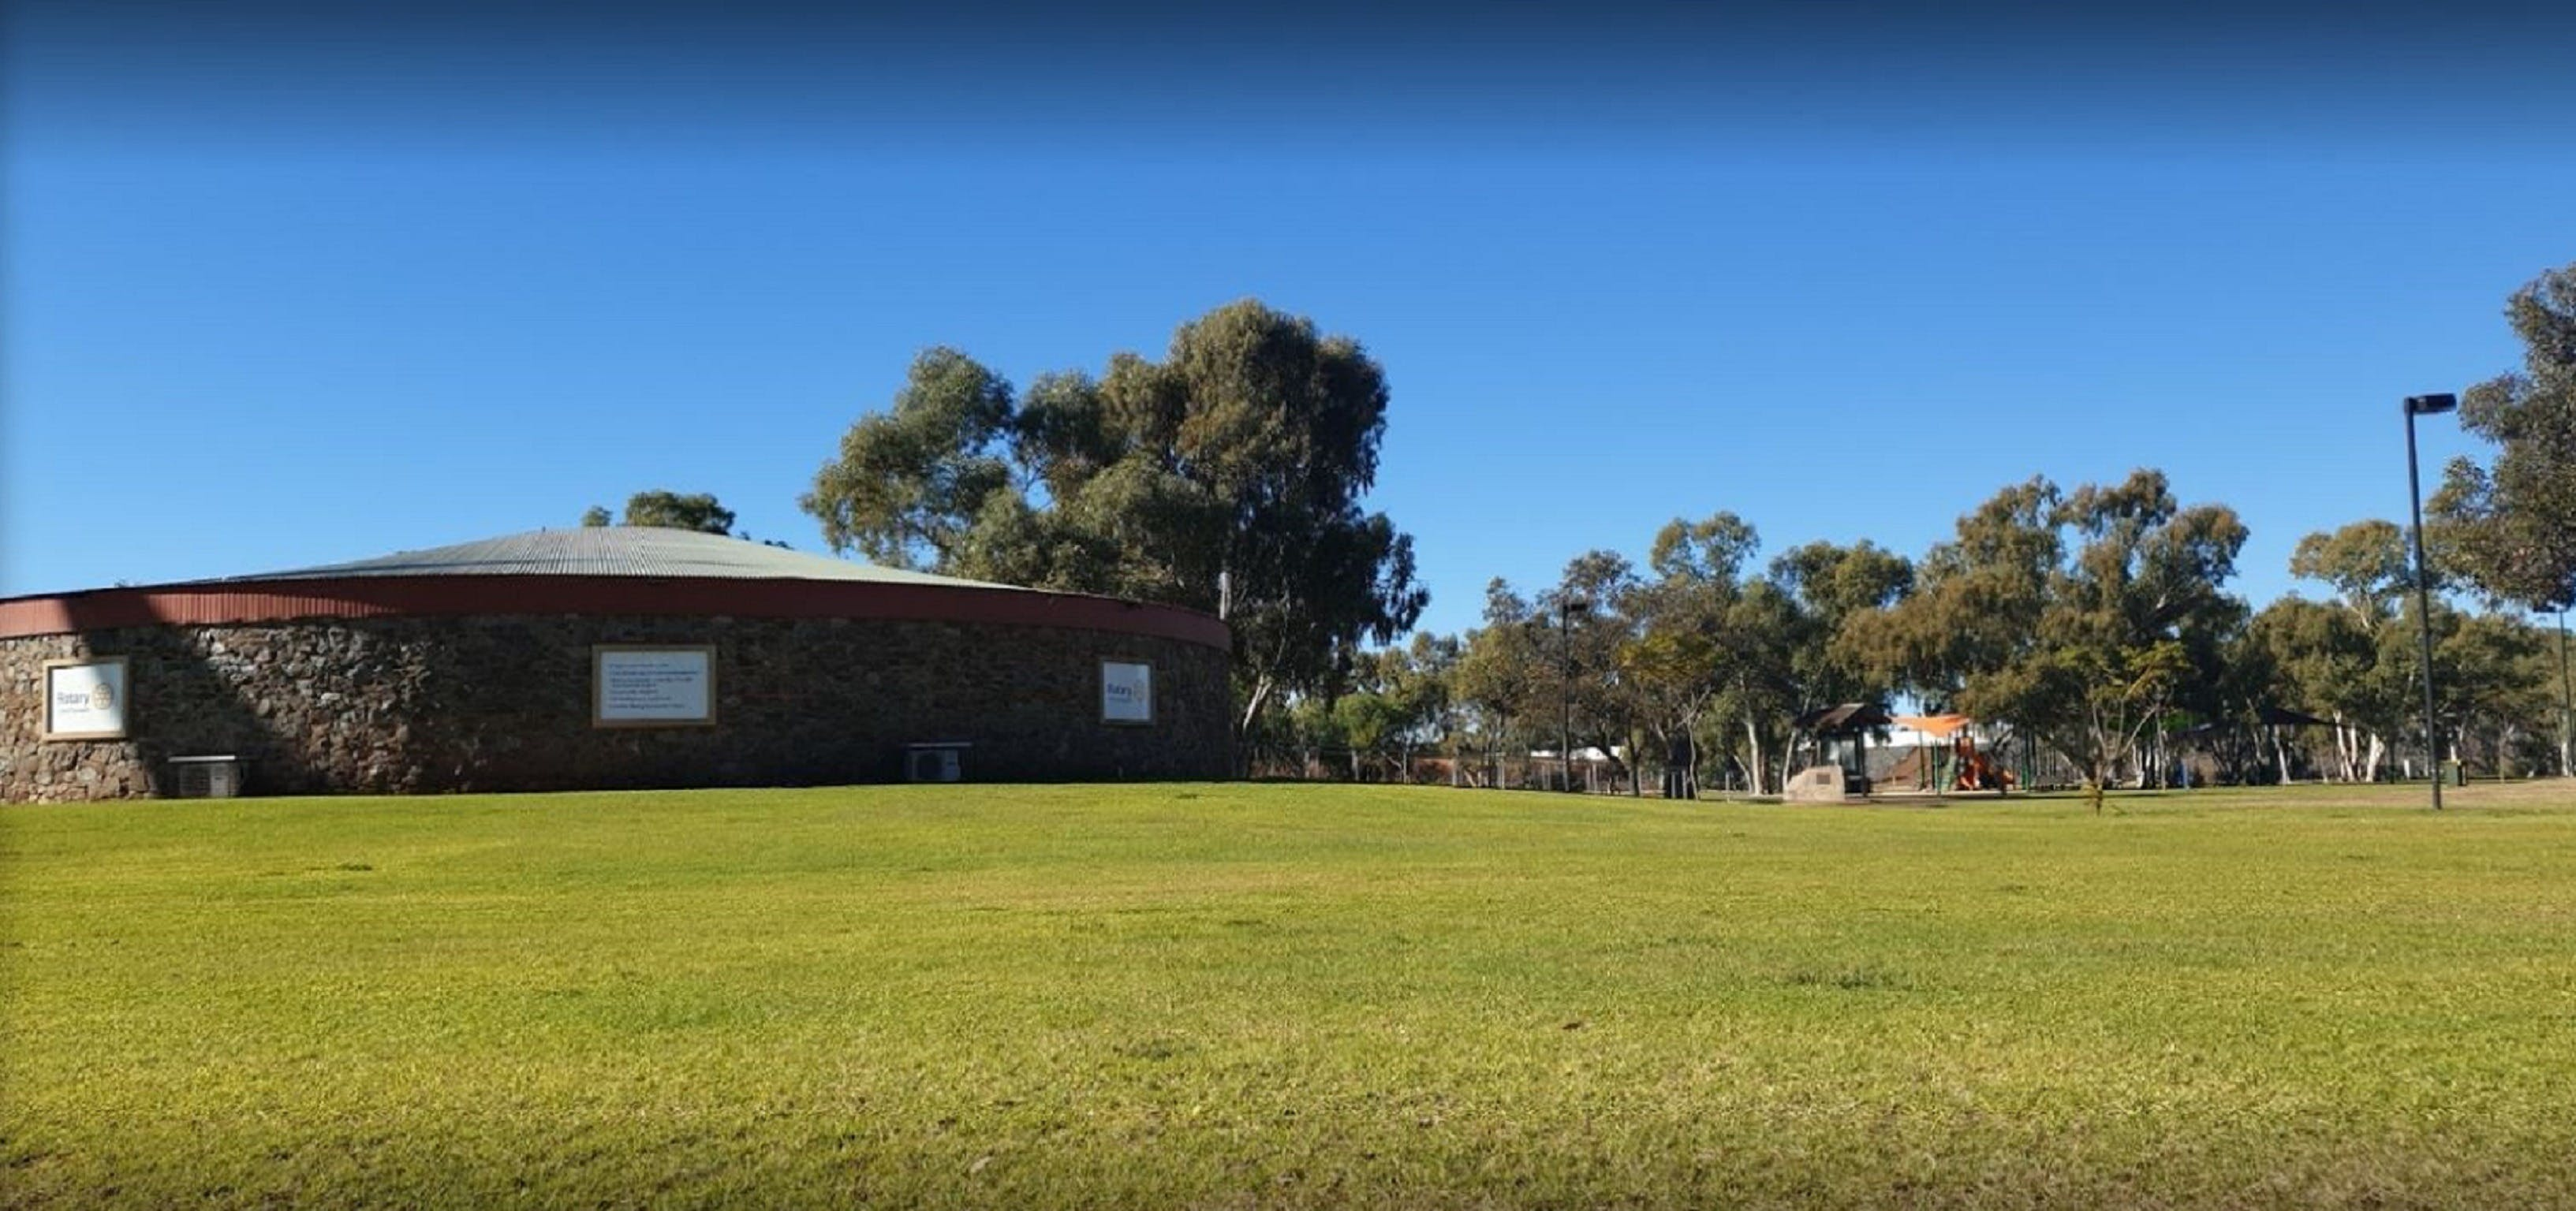 Gribble Creek Walk and Cycle Way - Accommodation Kalgoorlie